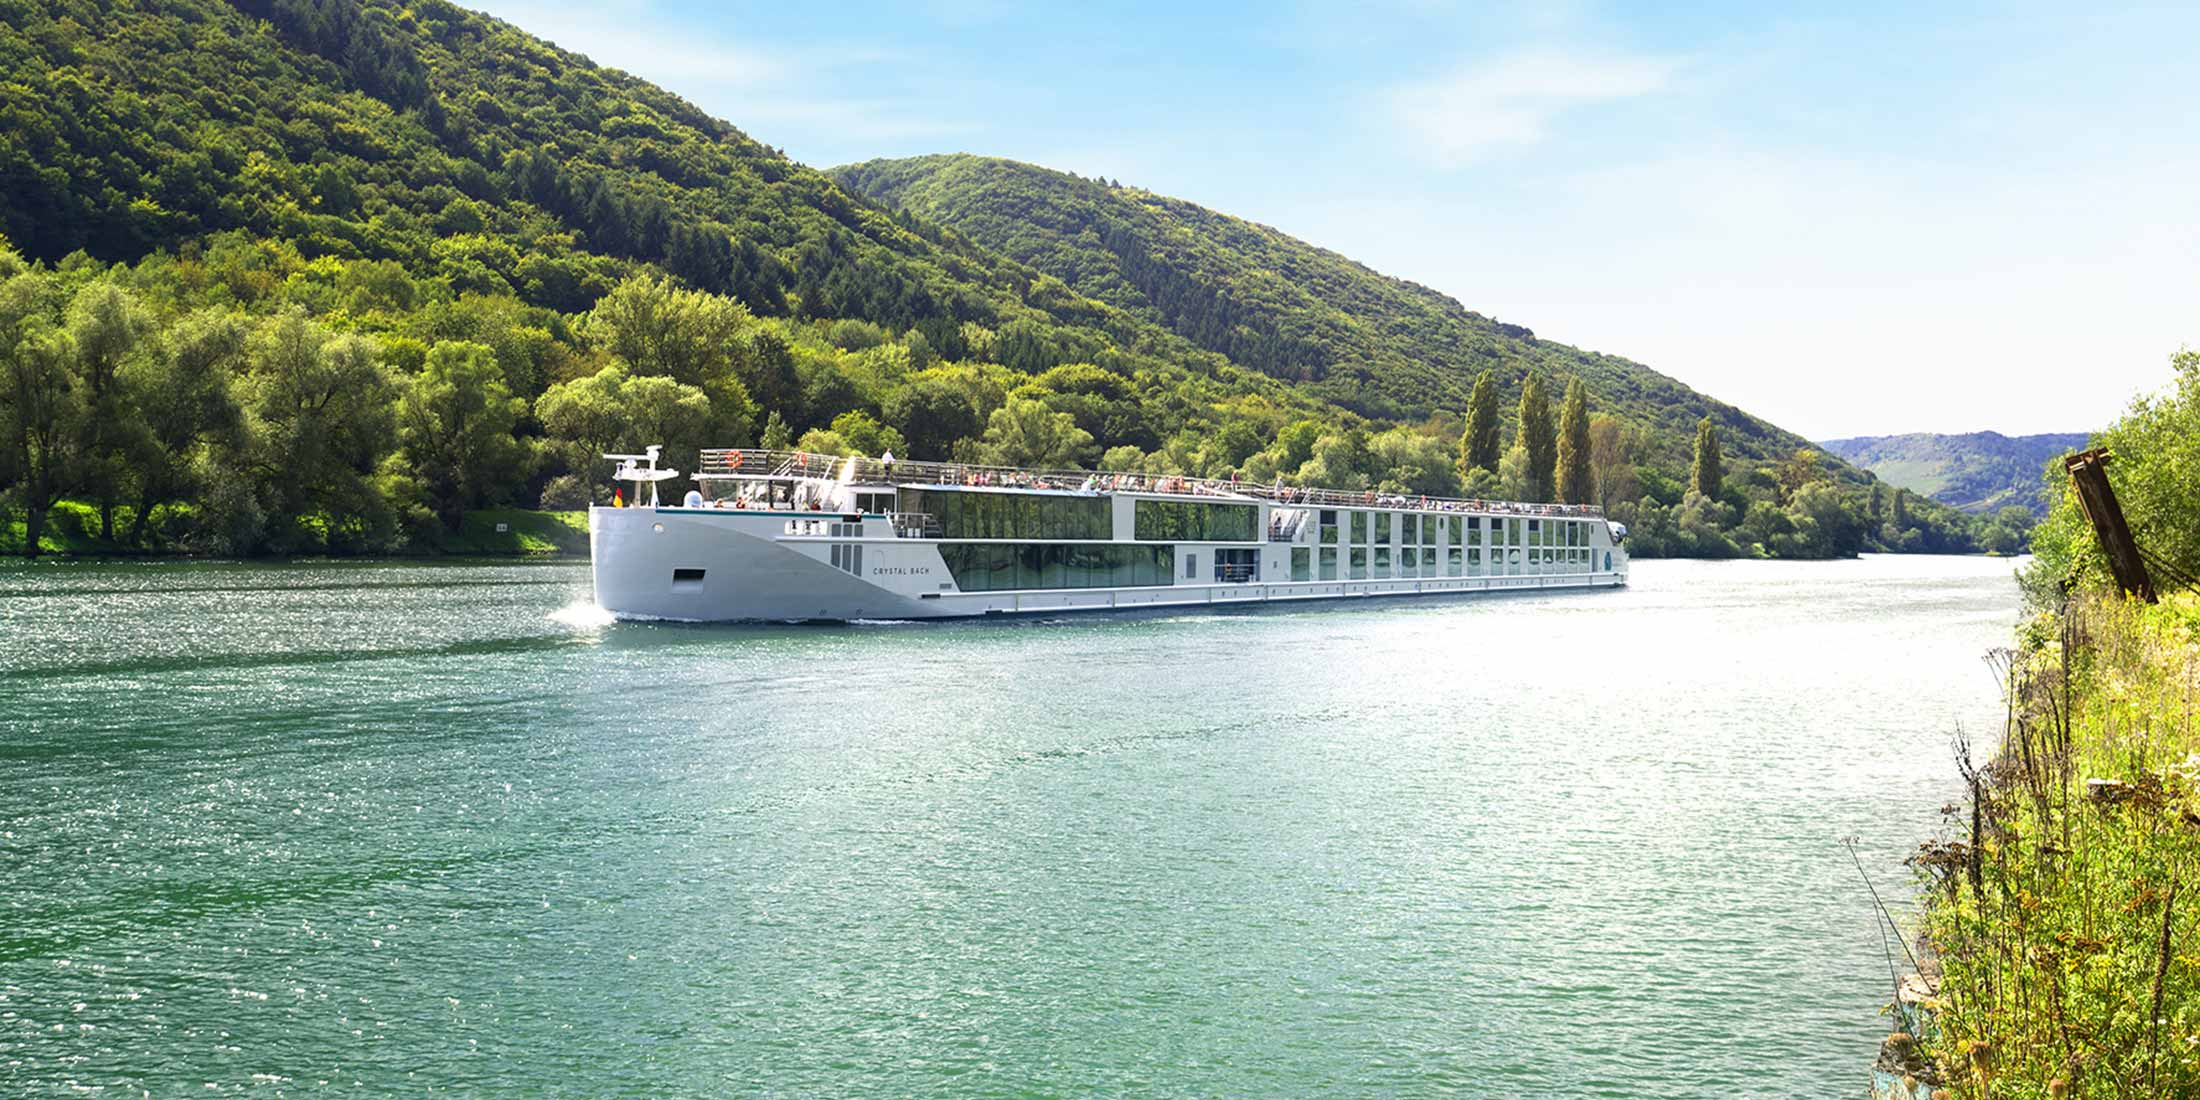 Find Your River Voyage with Crystal Cruises